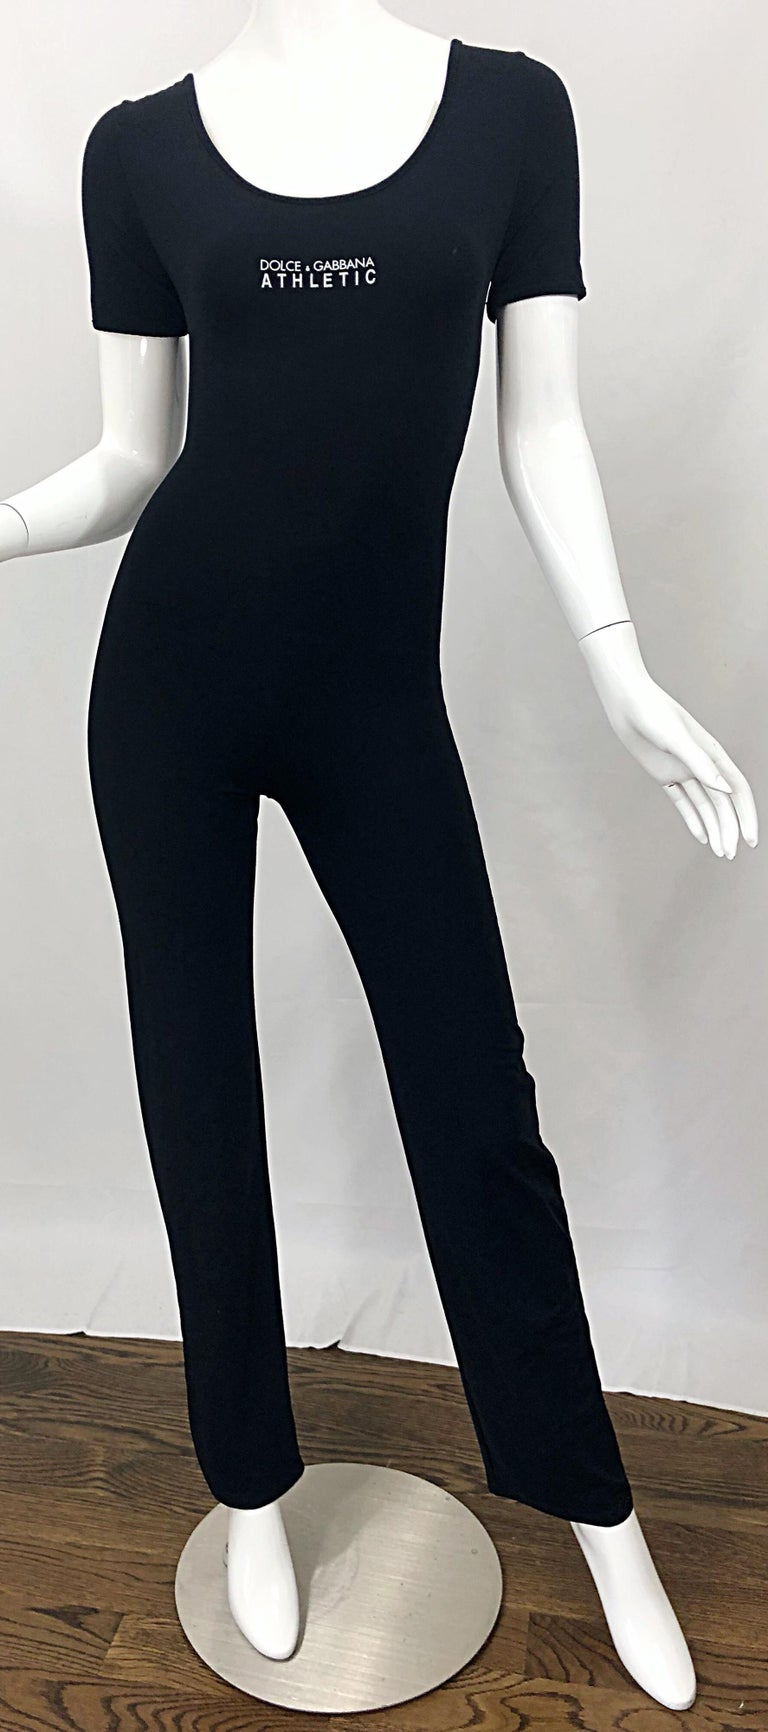 1990s Dolce & Gabbana Black and White Athletic One Piece Vintage 90s Jumpsuit For Sale 4